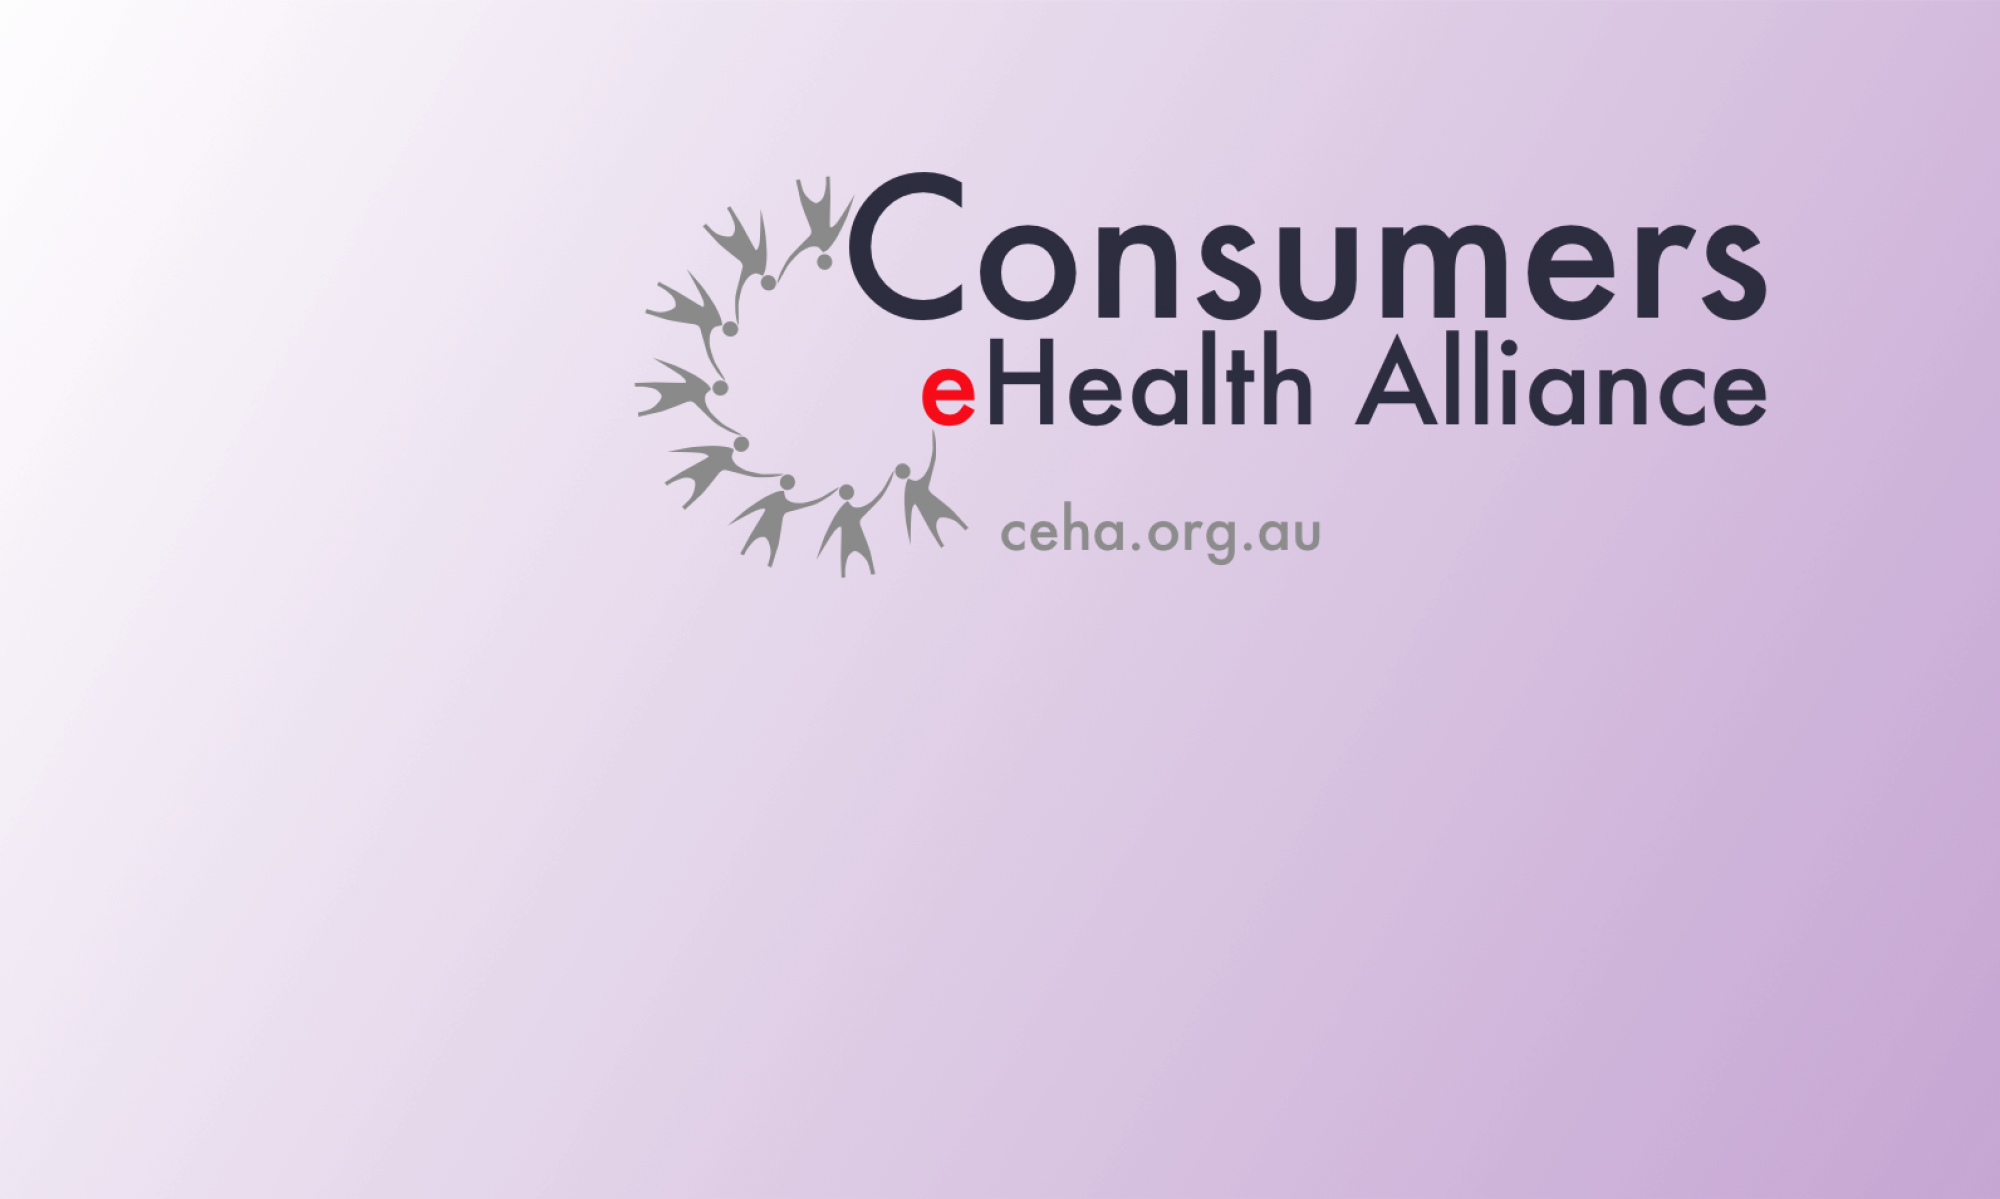 Consumers eHealth Alliance